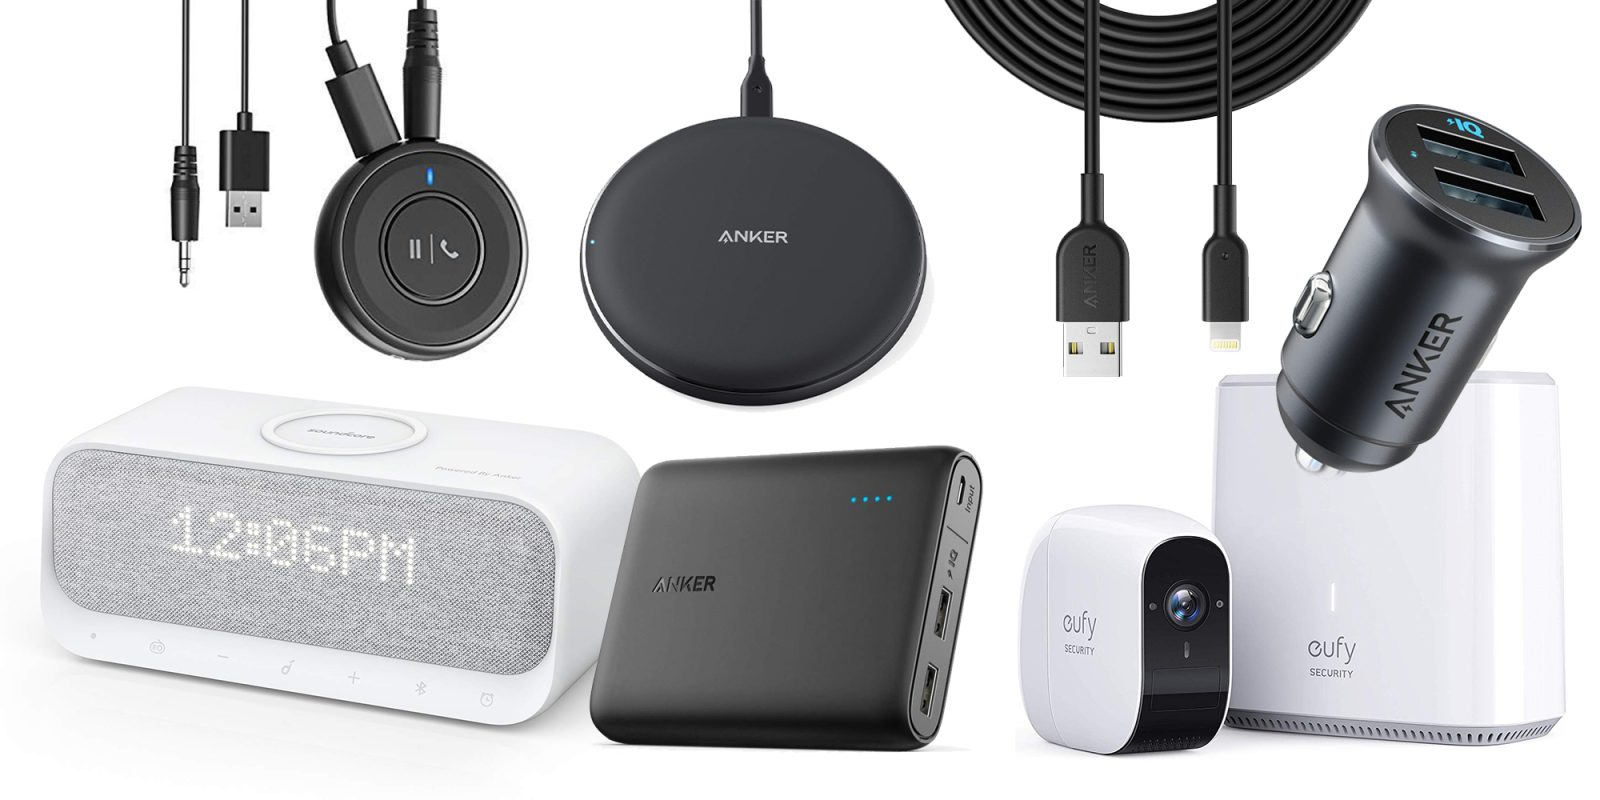 Anker's massive Summer Sale discounts accessories, cables, batteries, more from $10